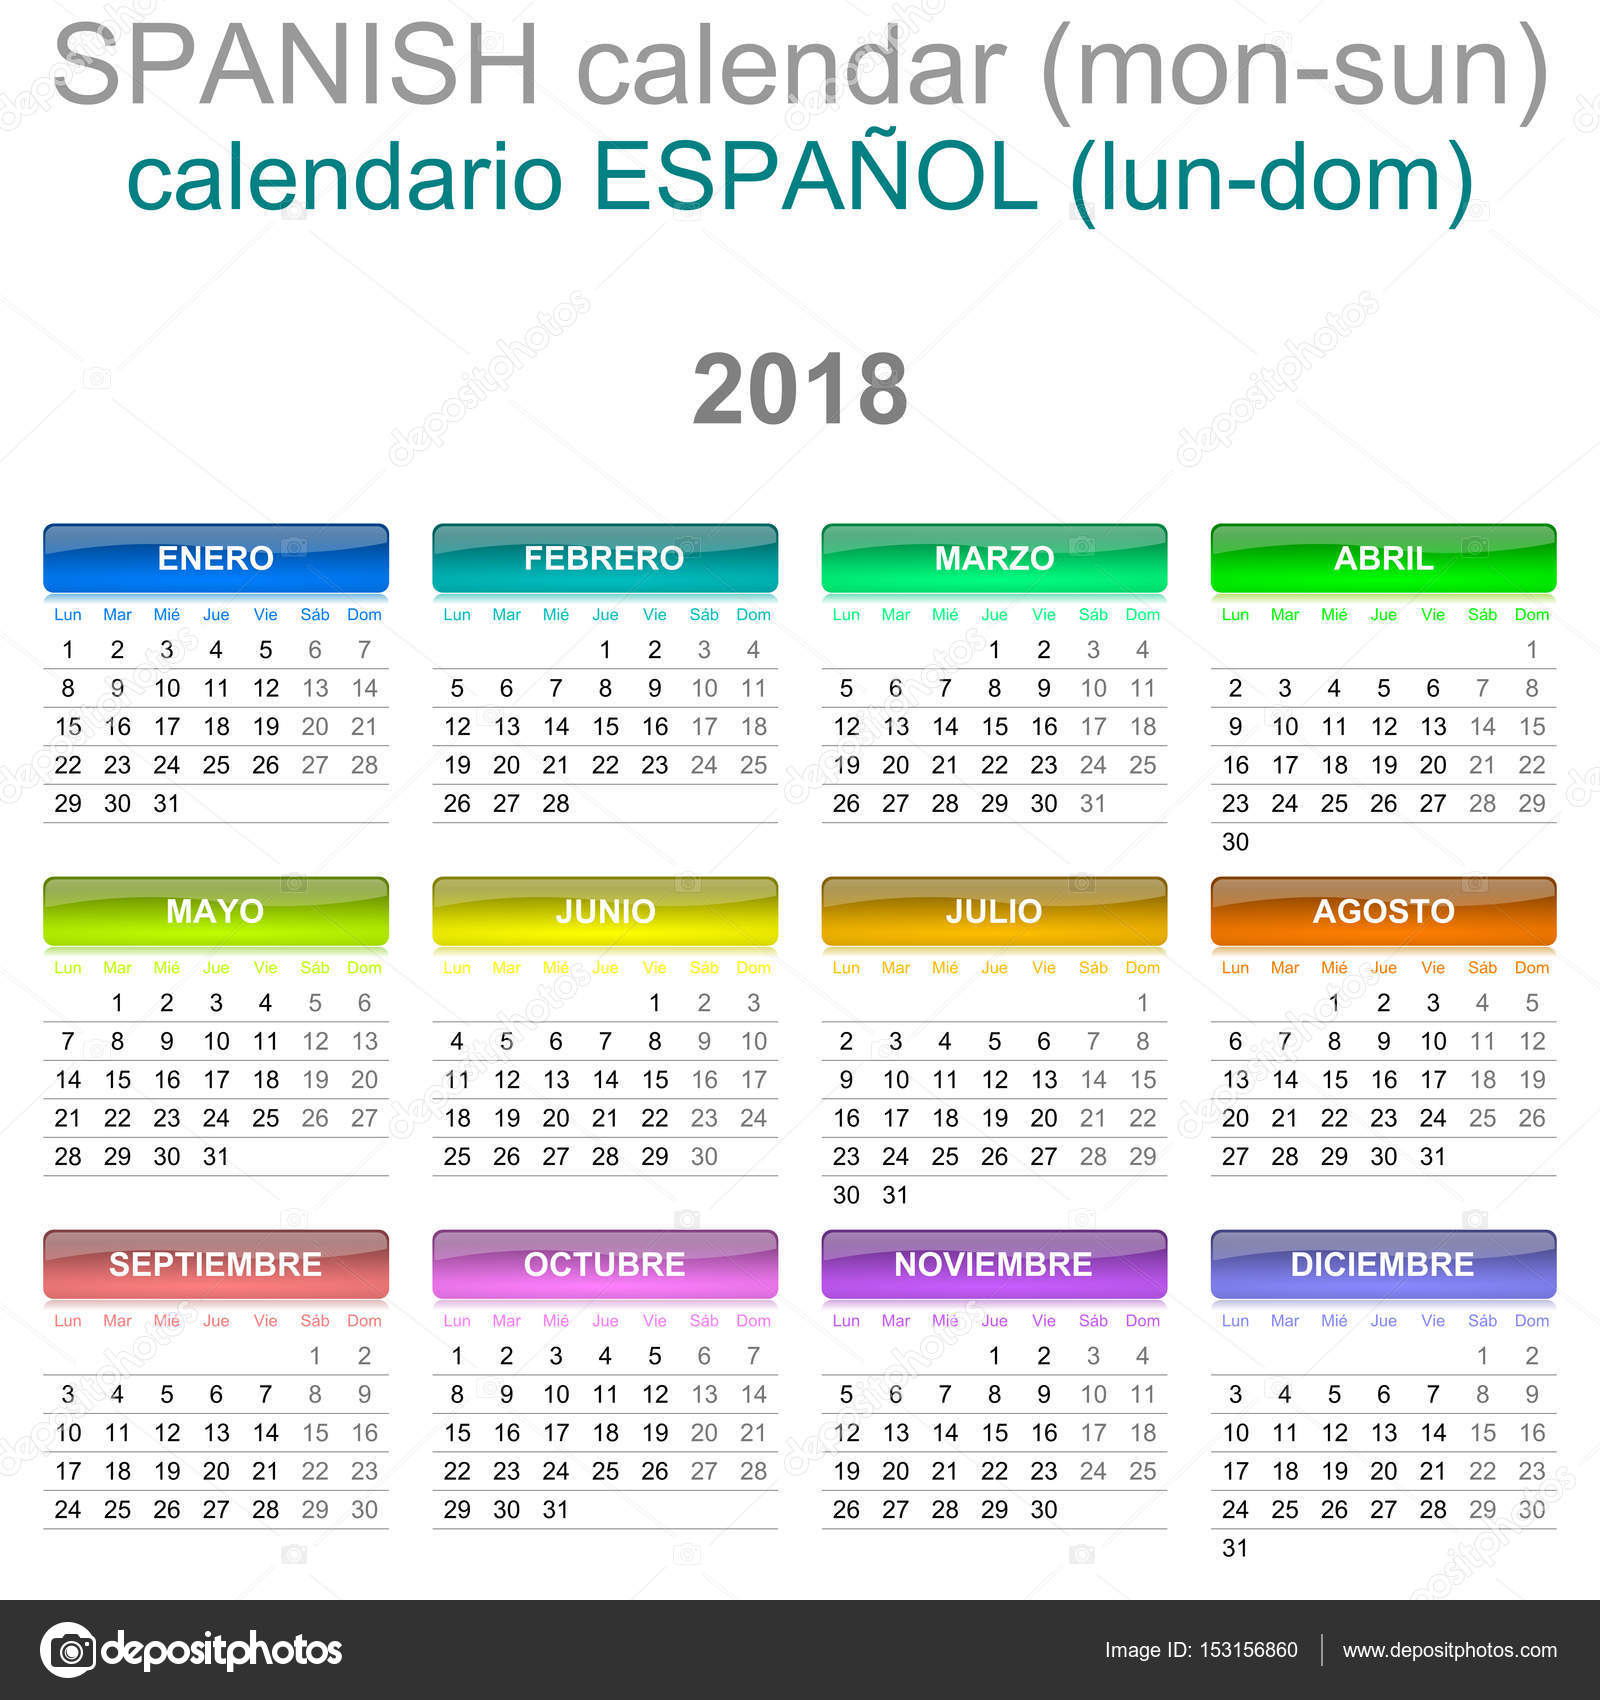 2018 calendar spanish language version monday to sunday stock photo